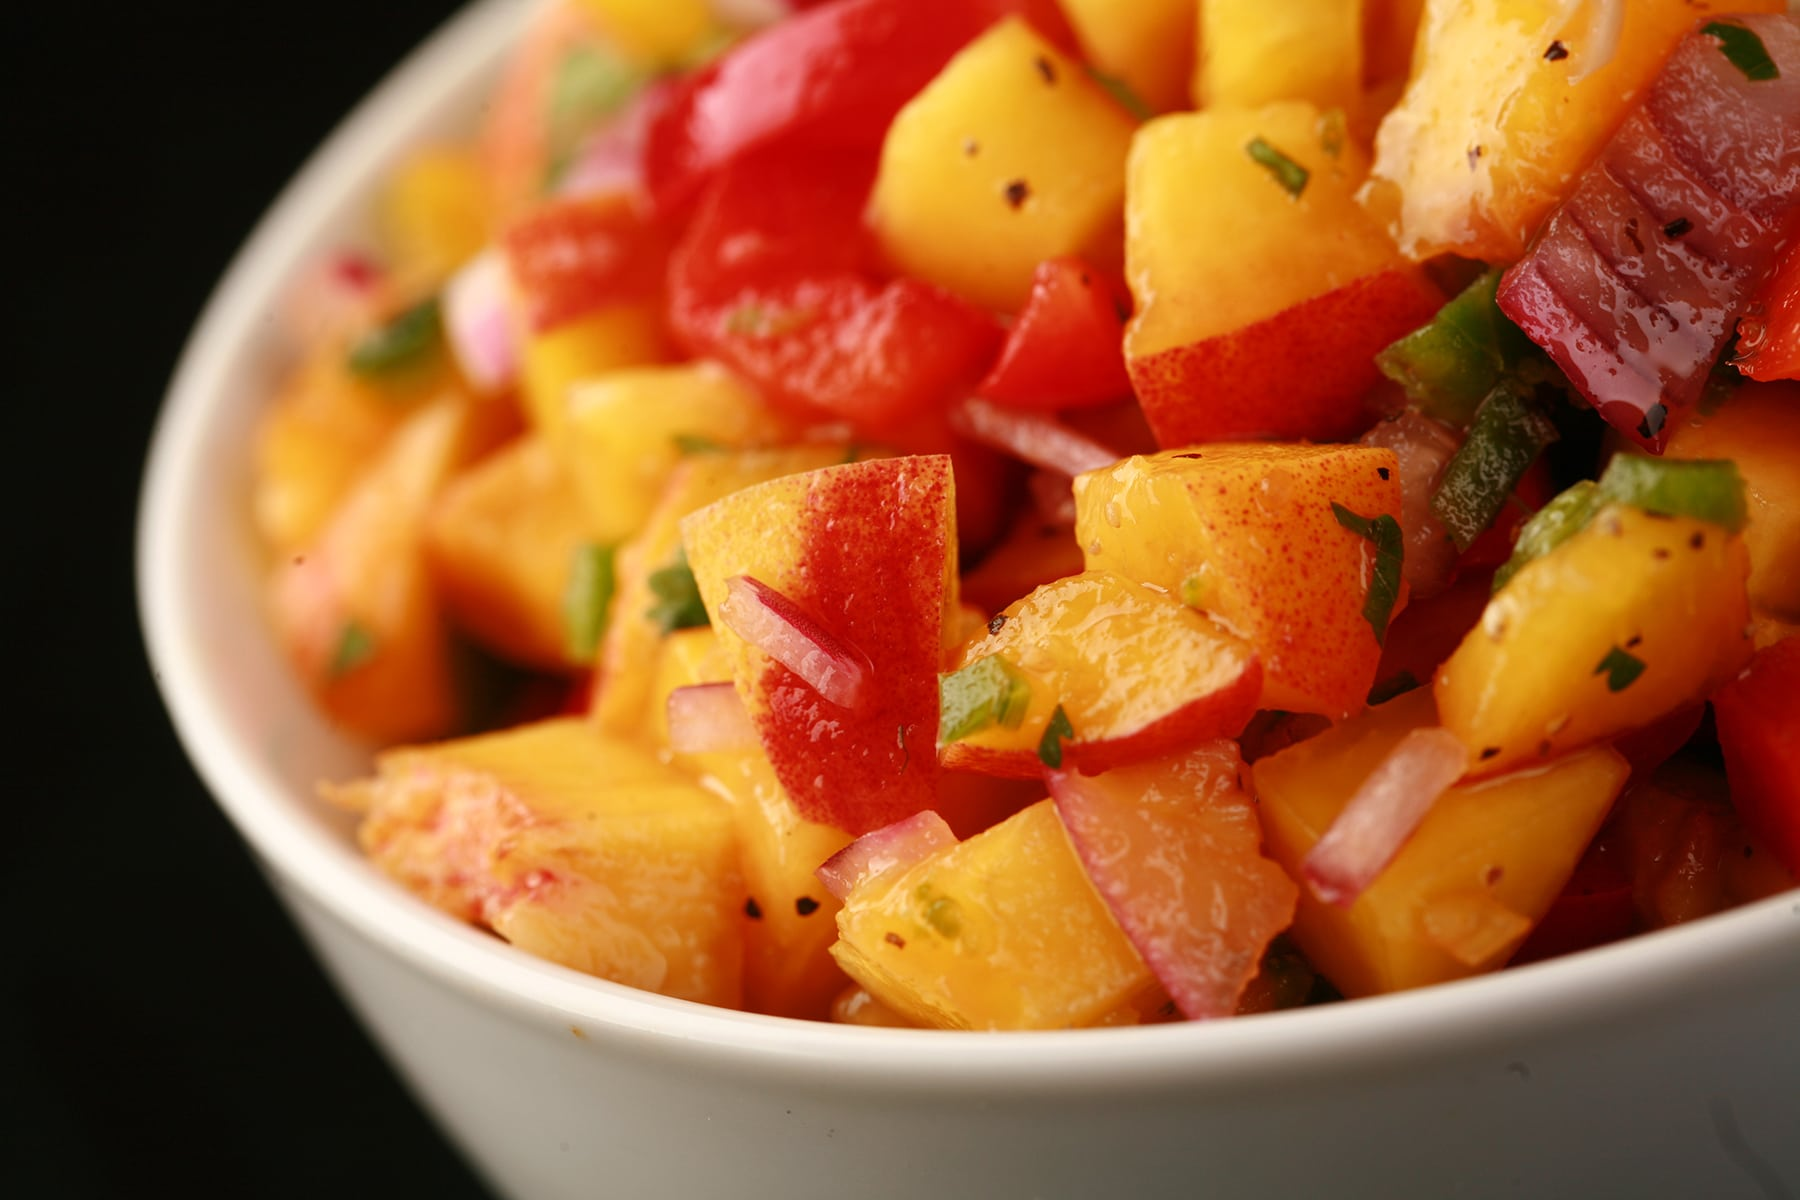 A close up photo of fresh peach salsa, with peaches, red pepper, red onions, jamapeno, and cilatro visible.